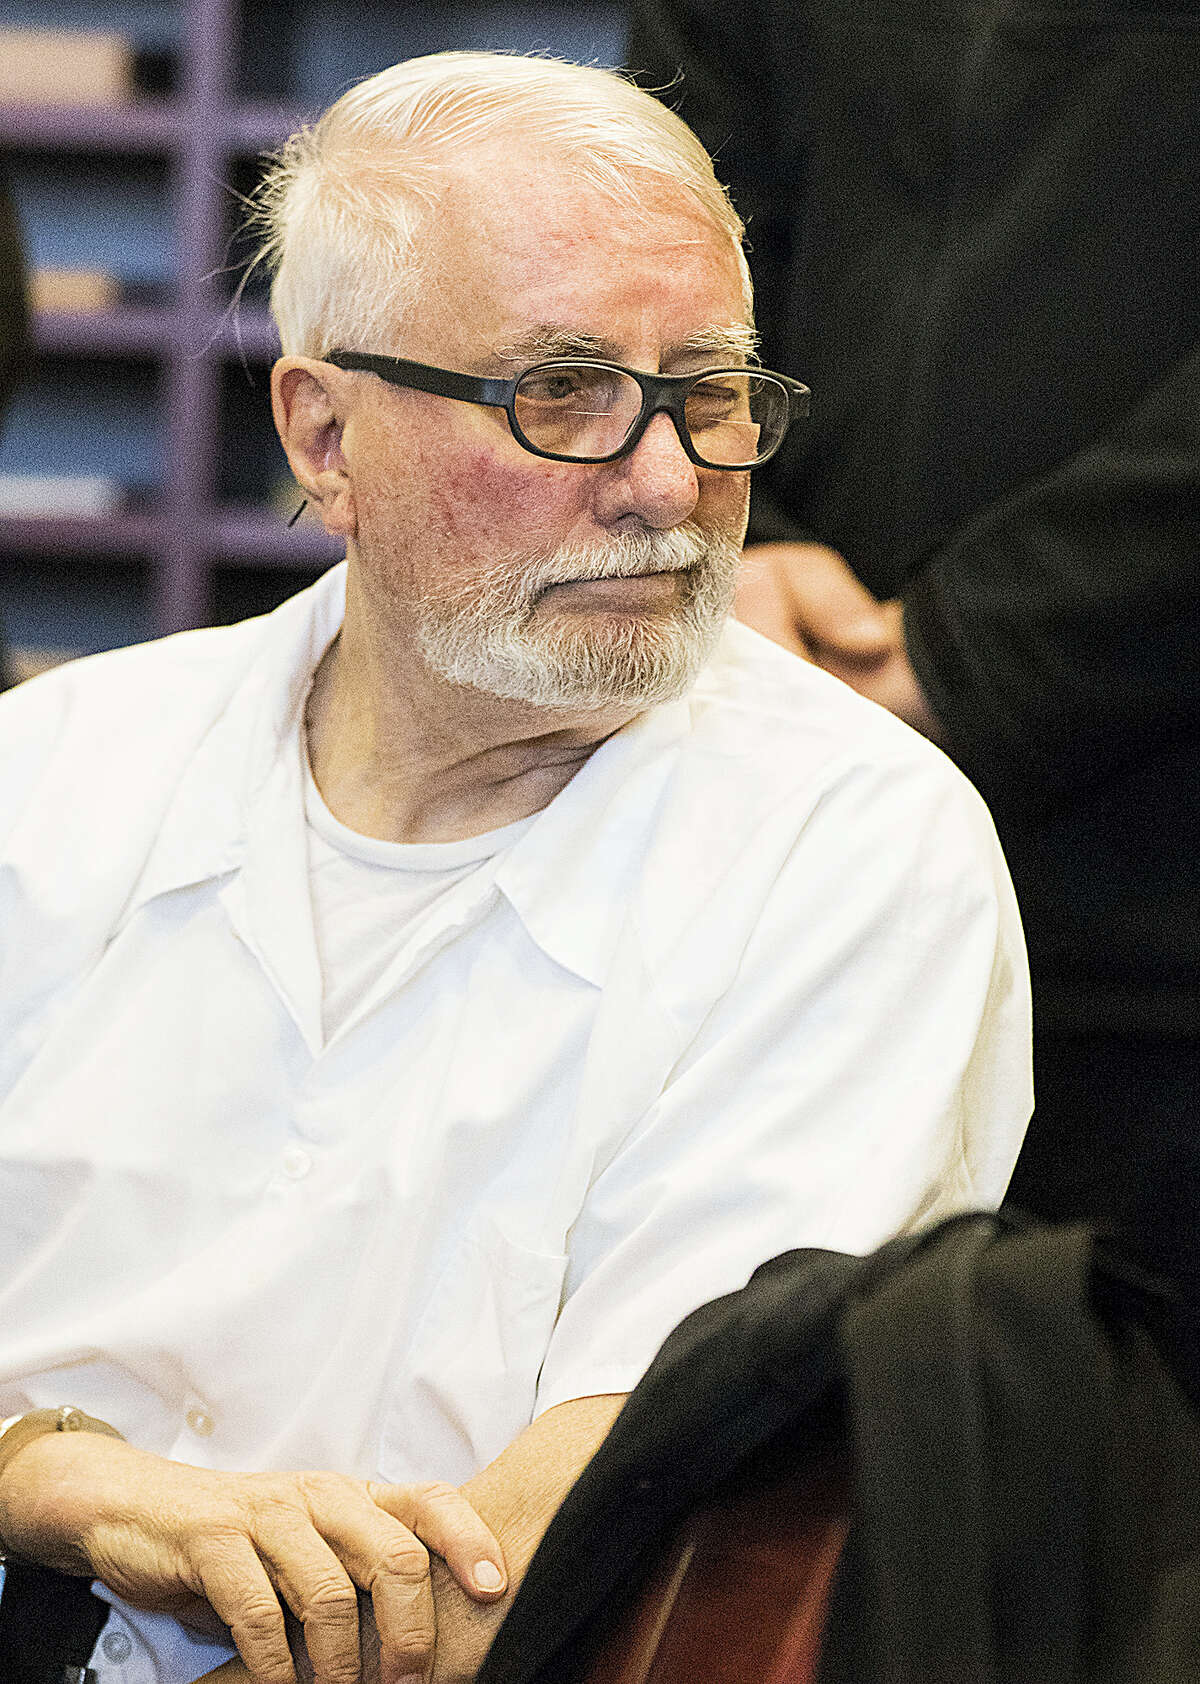 Jack McCullough winks at his stepdaughter Janey O'Connor behind him as he sits during a hearing in the DeKalb County Courthouse on Friday, April 15, 2016 in Sycamore, Ill. McCullough who a prosecutor says was wrongly convicted in the 1957 killing of an Illinois schoolgirl was released Friday shortly after a judge vacated his conviction, meaning that one of the oldest cold cases to be tried in U.S. history has officially gone cold again.